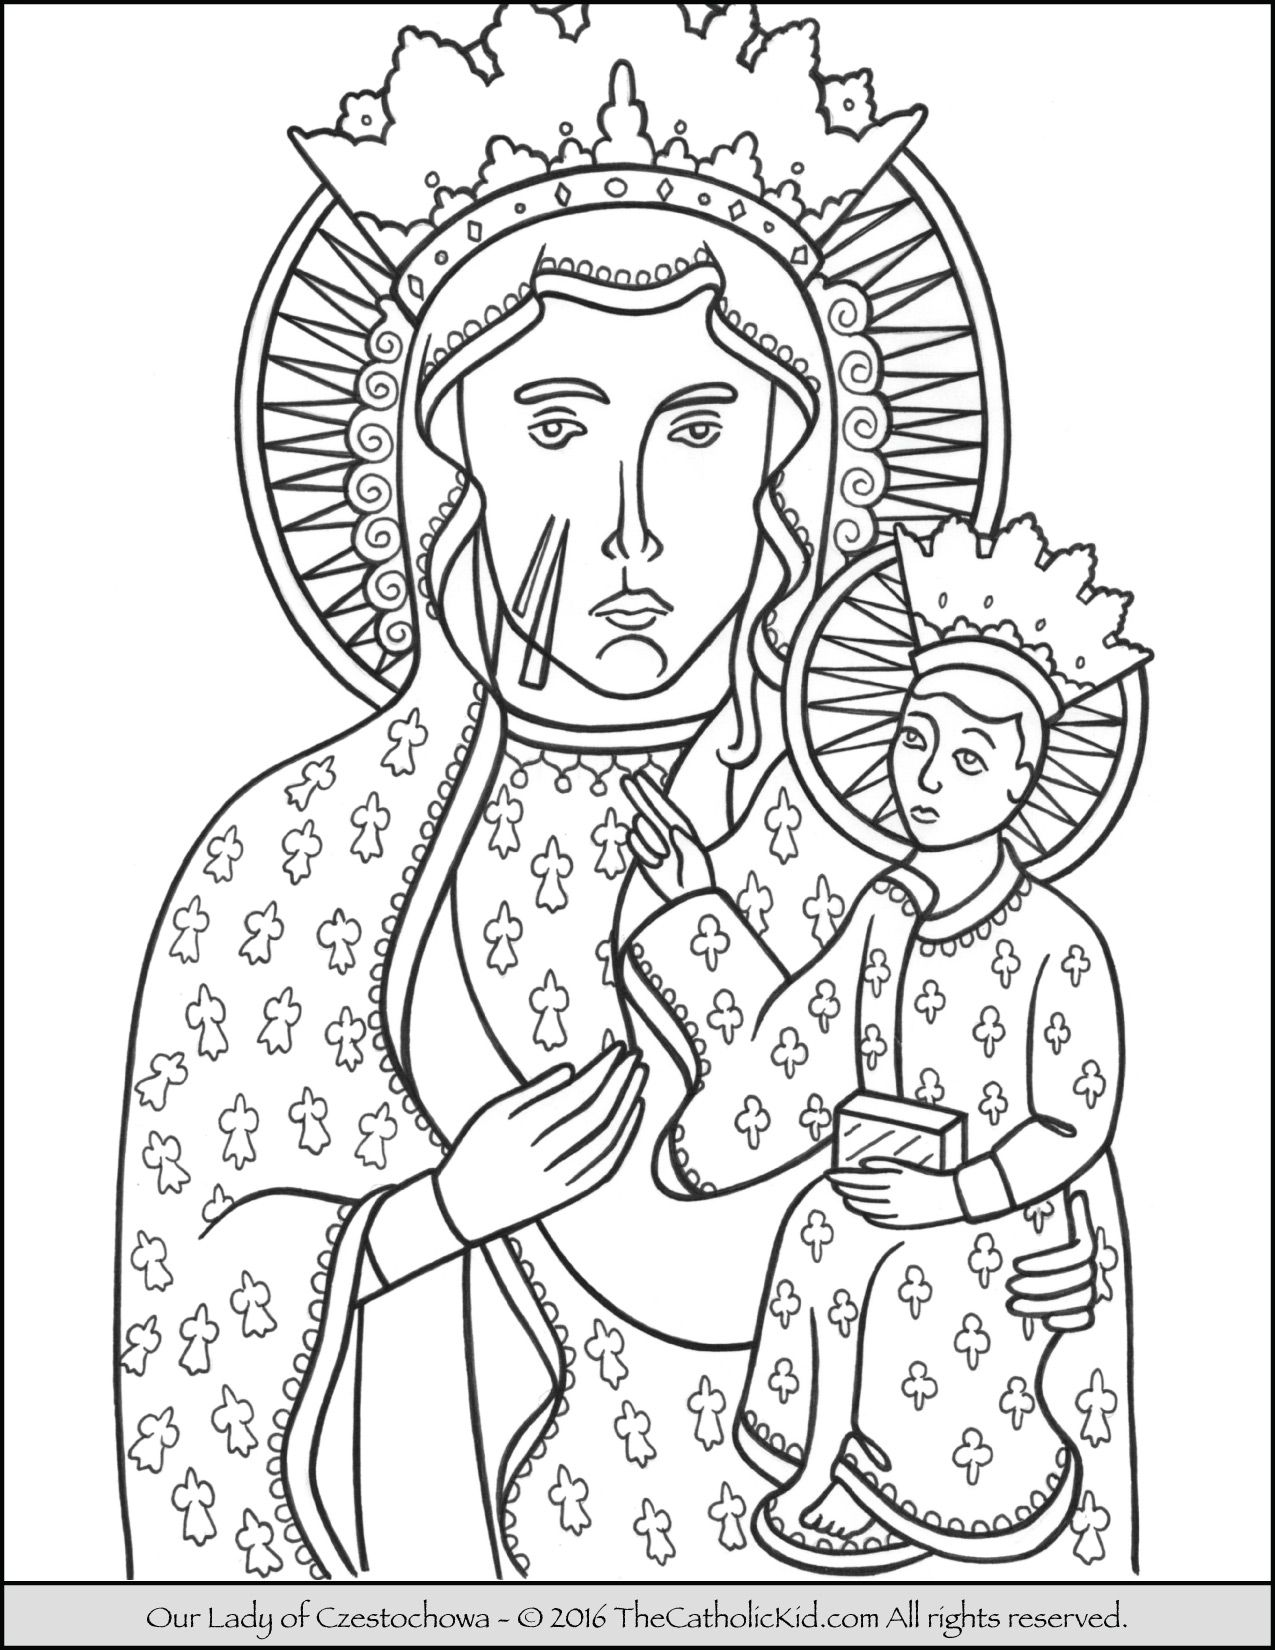 Our Lady of Czestochowa Coloring Page | Catholic Coloring Pages for ...